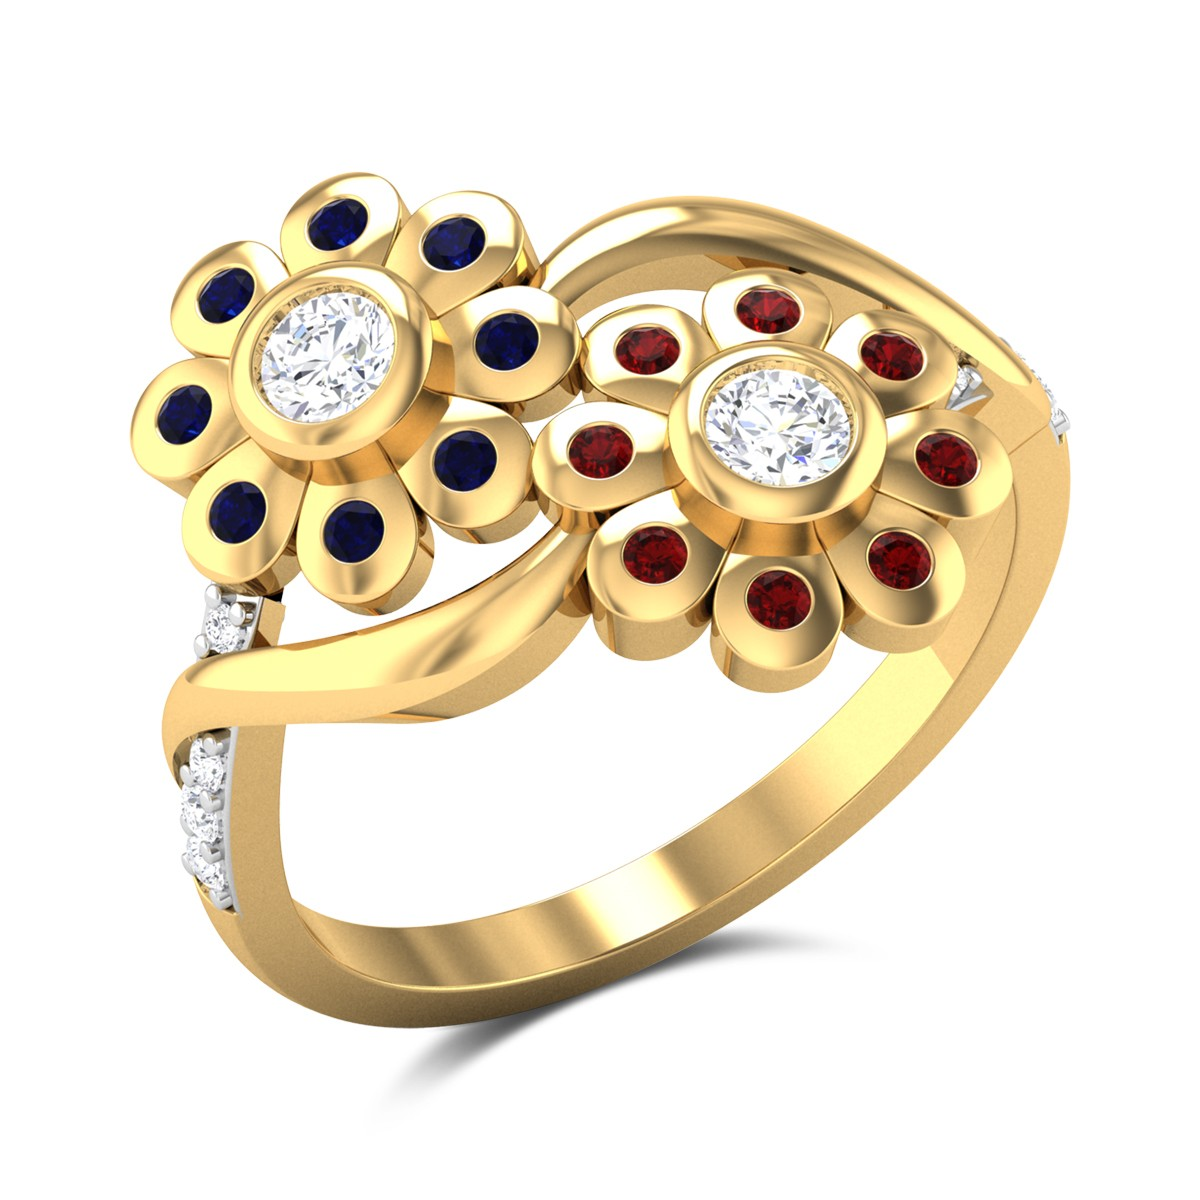 Aefre Dual Flower Ruby and Sapphire Ring